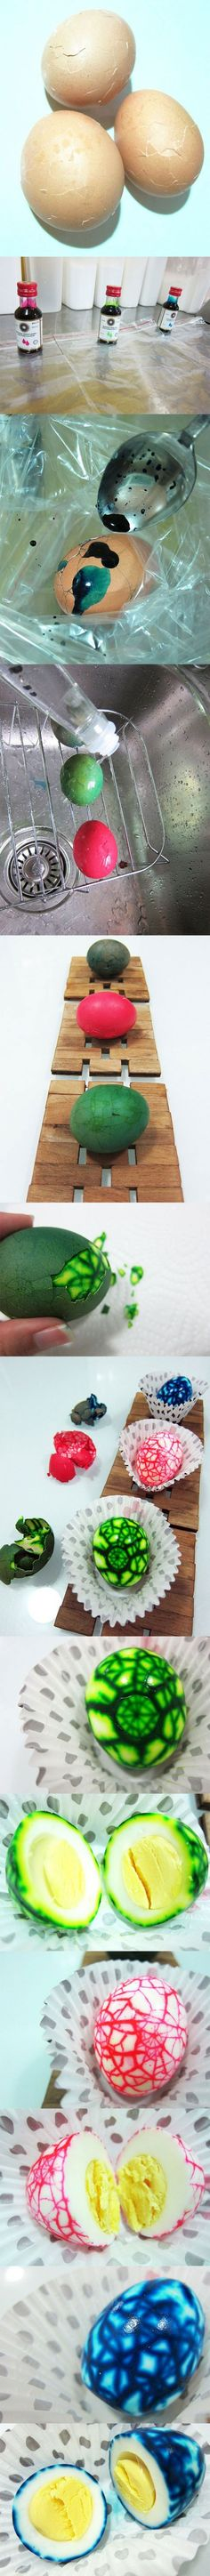 Marbled easter egg Door lia.pijpers.9